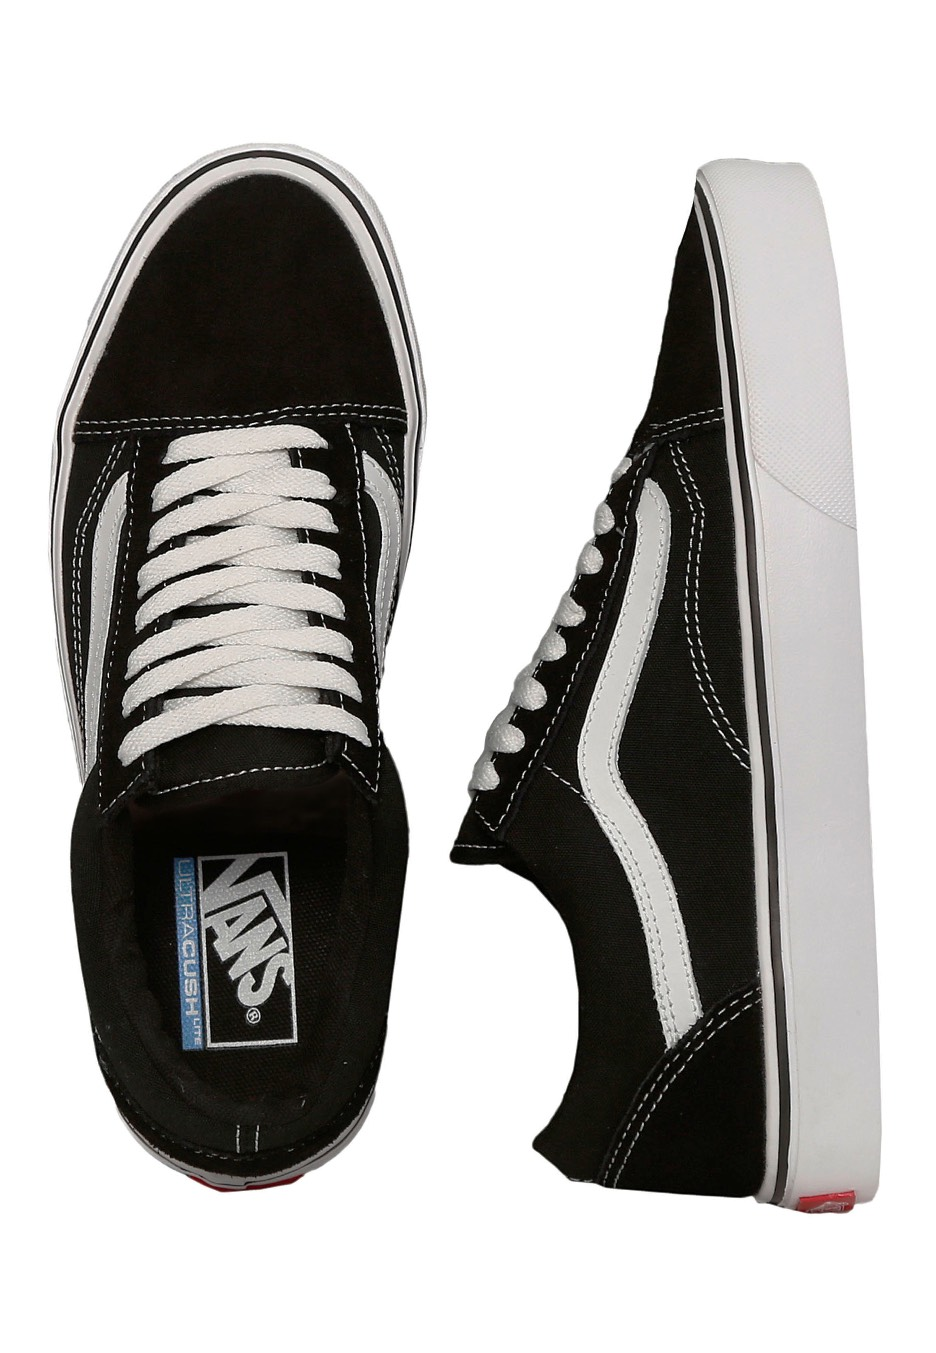 ce86c0fc6cbc Vans - Old Skool Lite Suede Canvas Black White - Shoes - Impericon.com UK